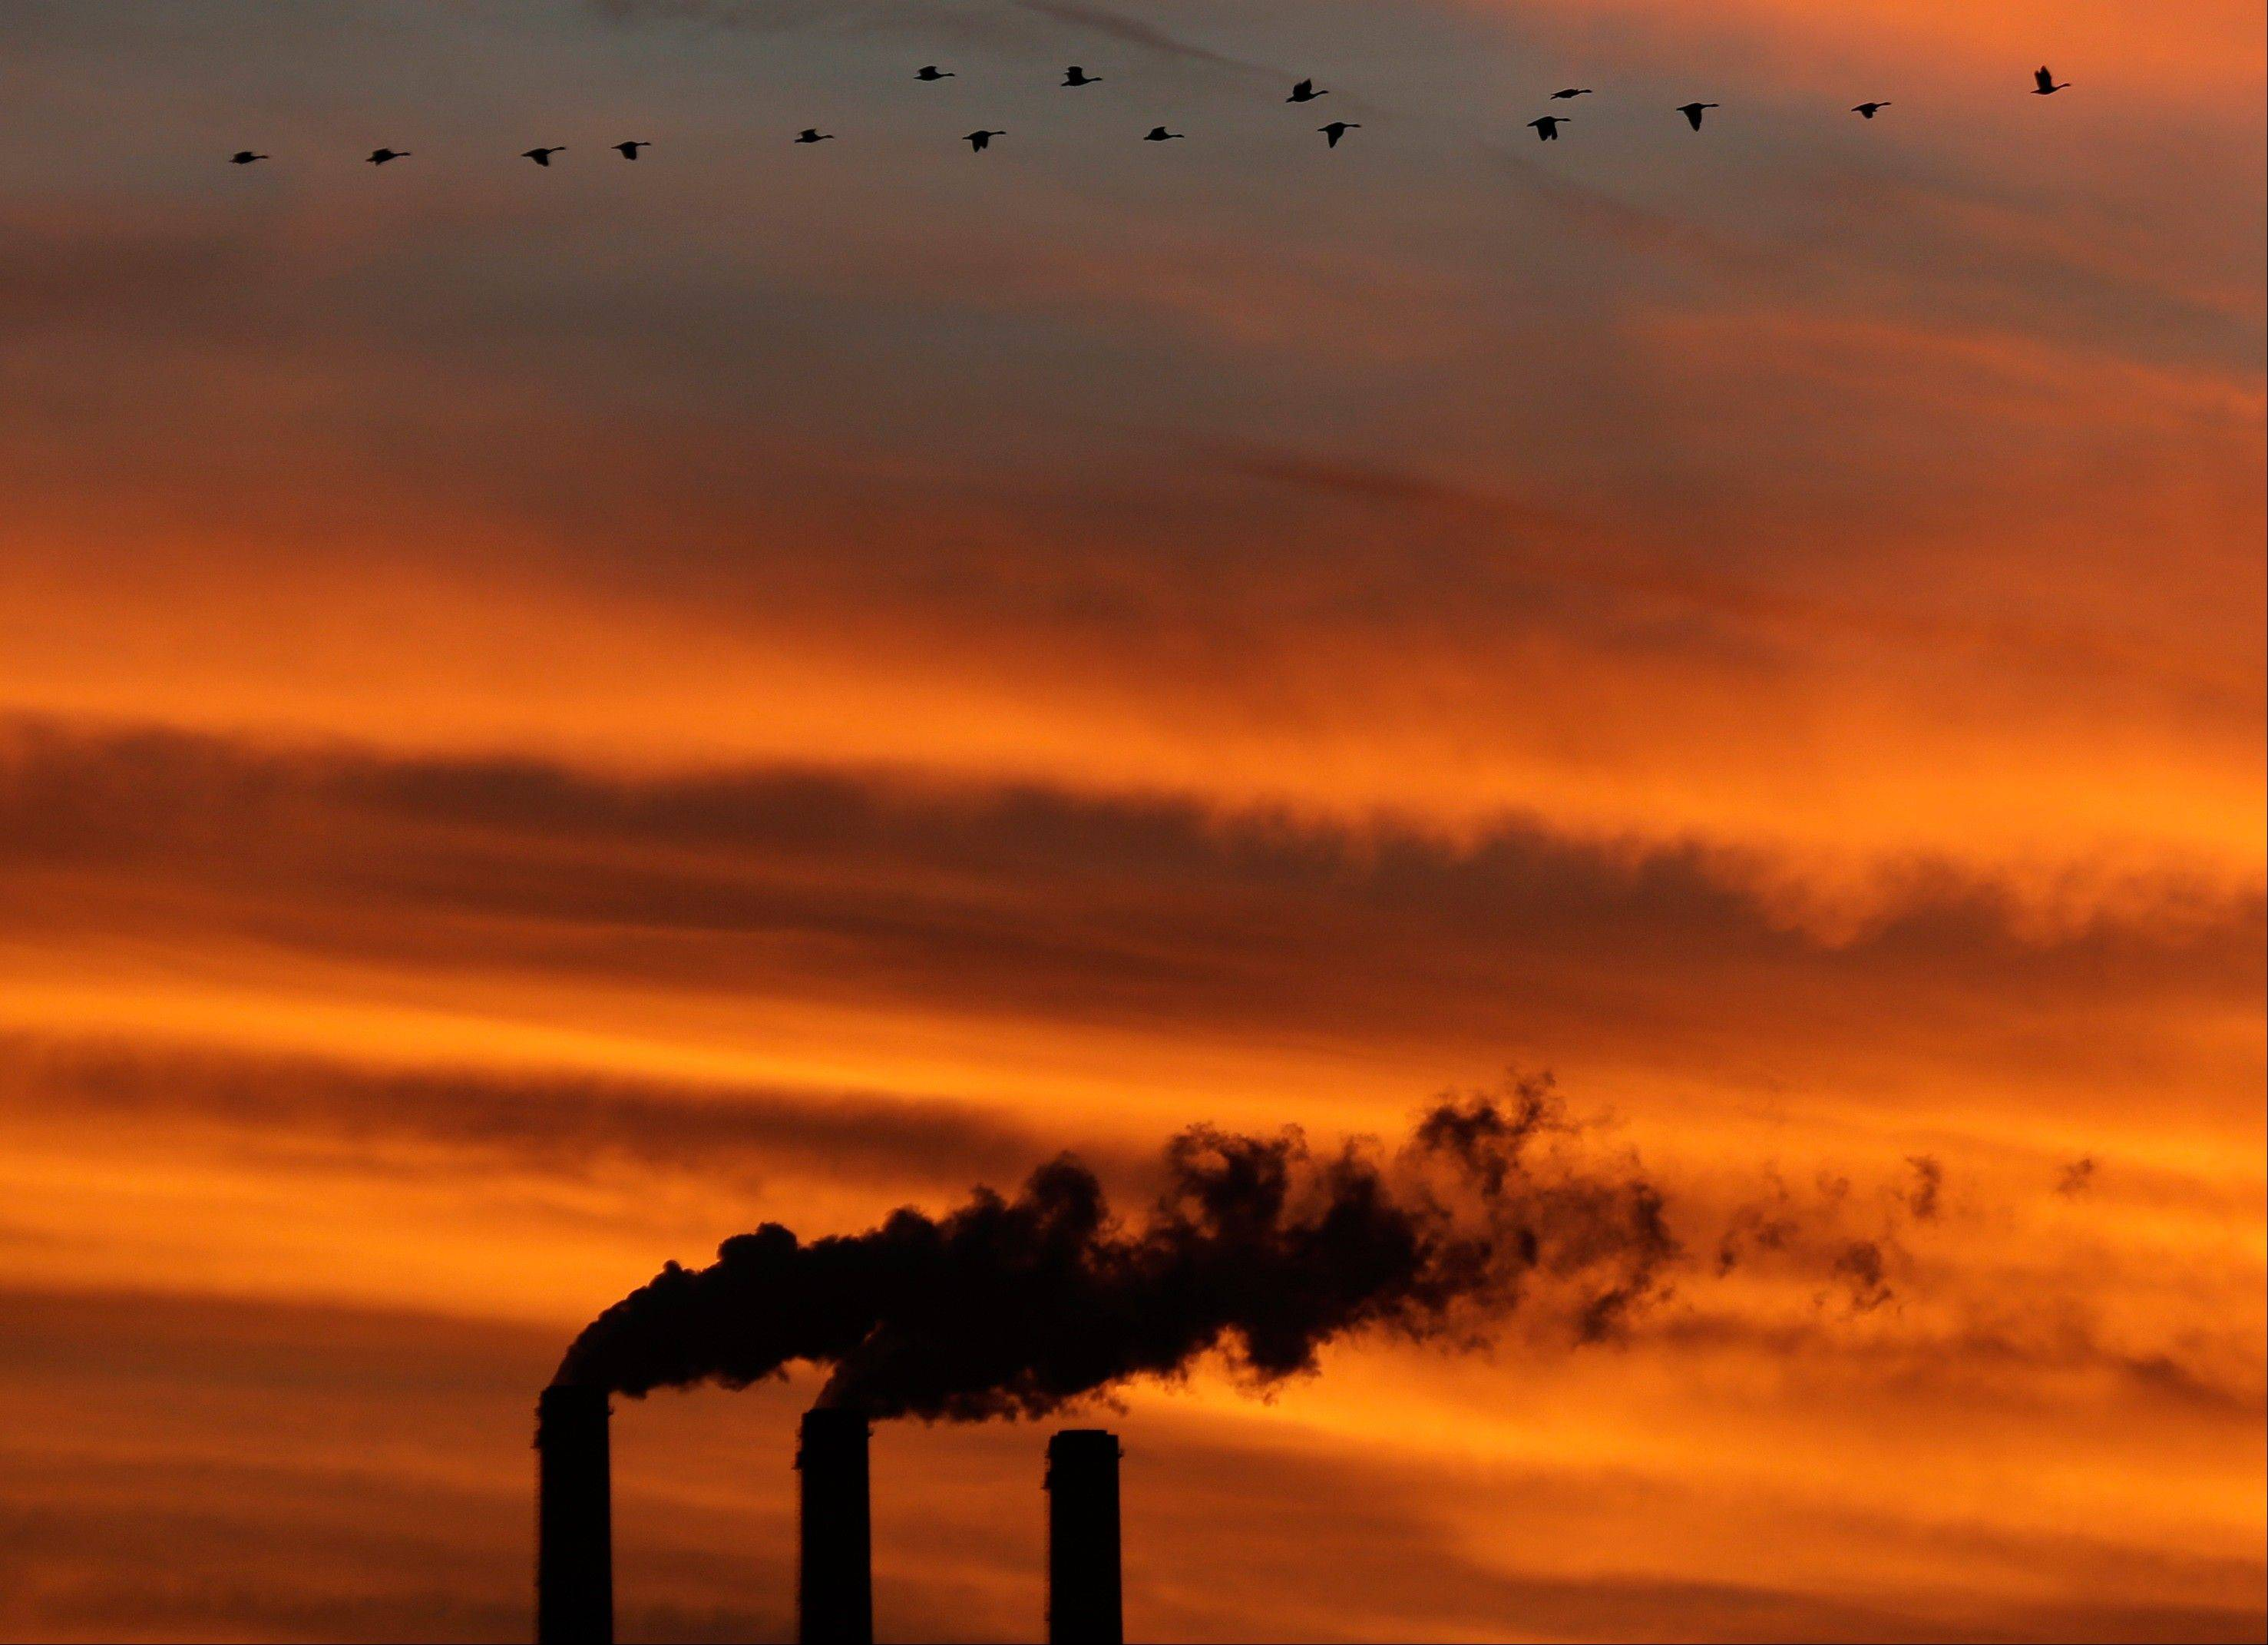 A flock of Geese fly past the smokestacks at the Jeffrey Energy Center coal power plant as the sun sets near Emmett, Kan.